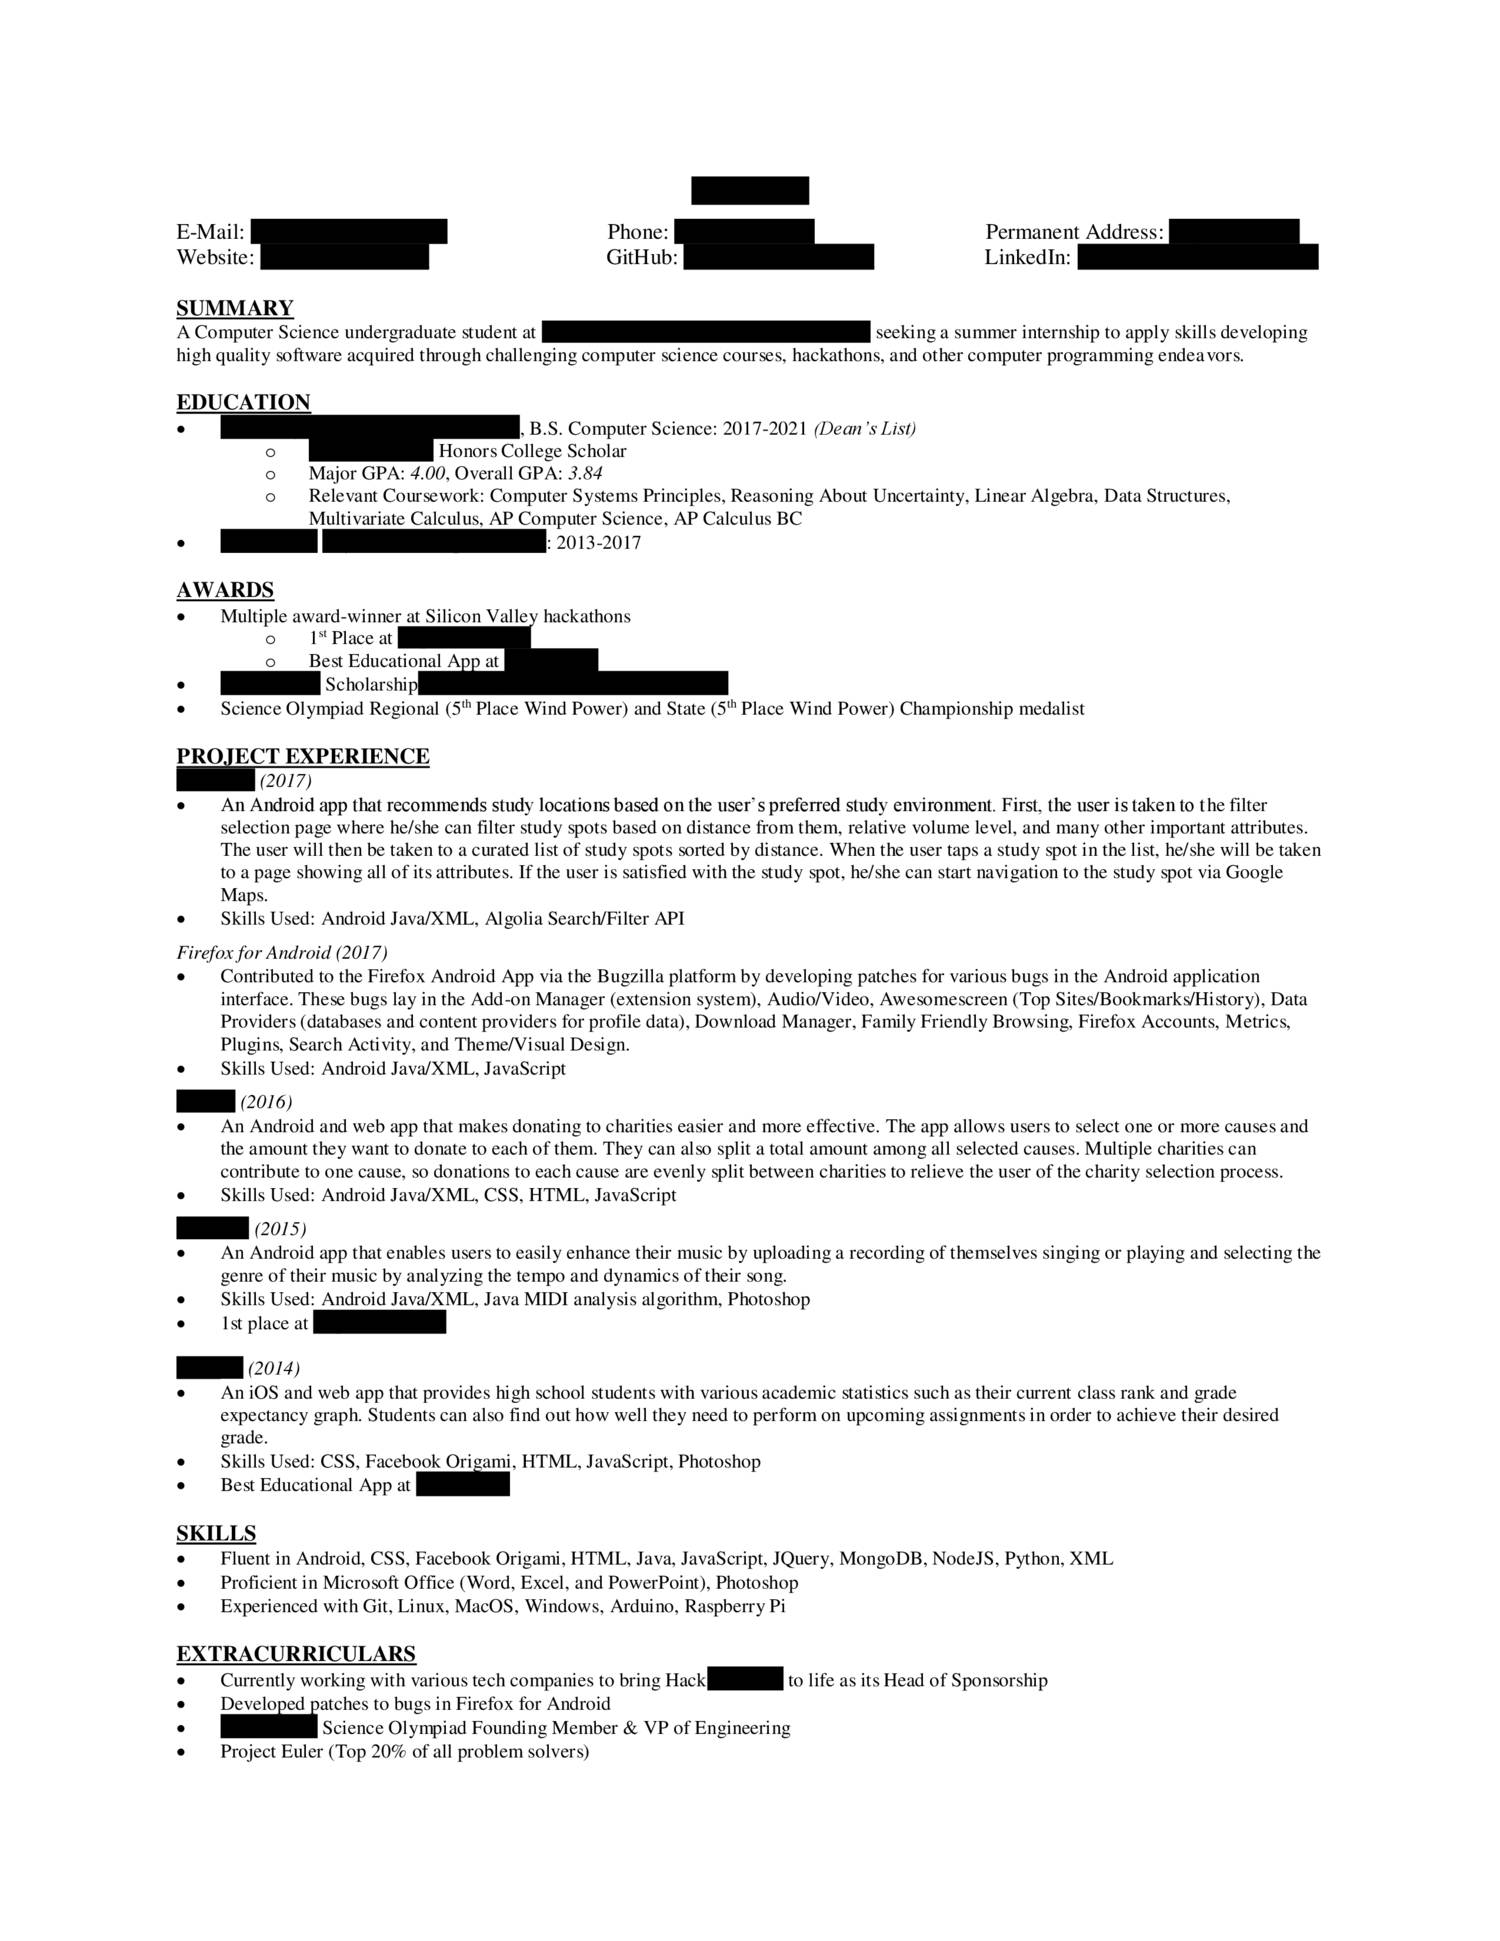 Anonymized Resume.pdf - DocDroid